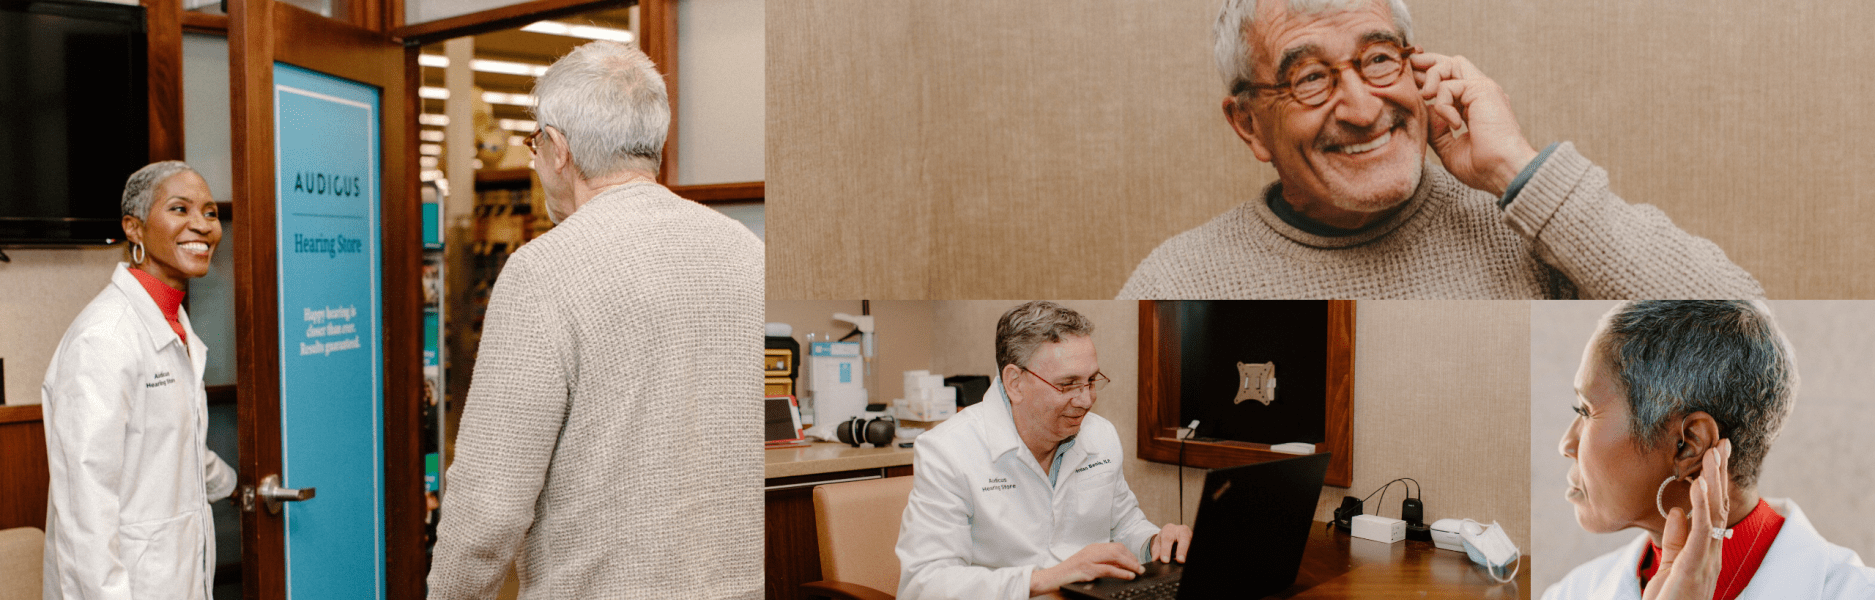 Images from our Denver hearing clinic - come visit!